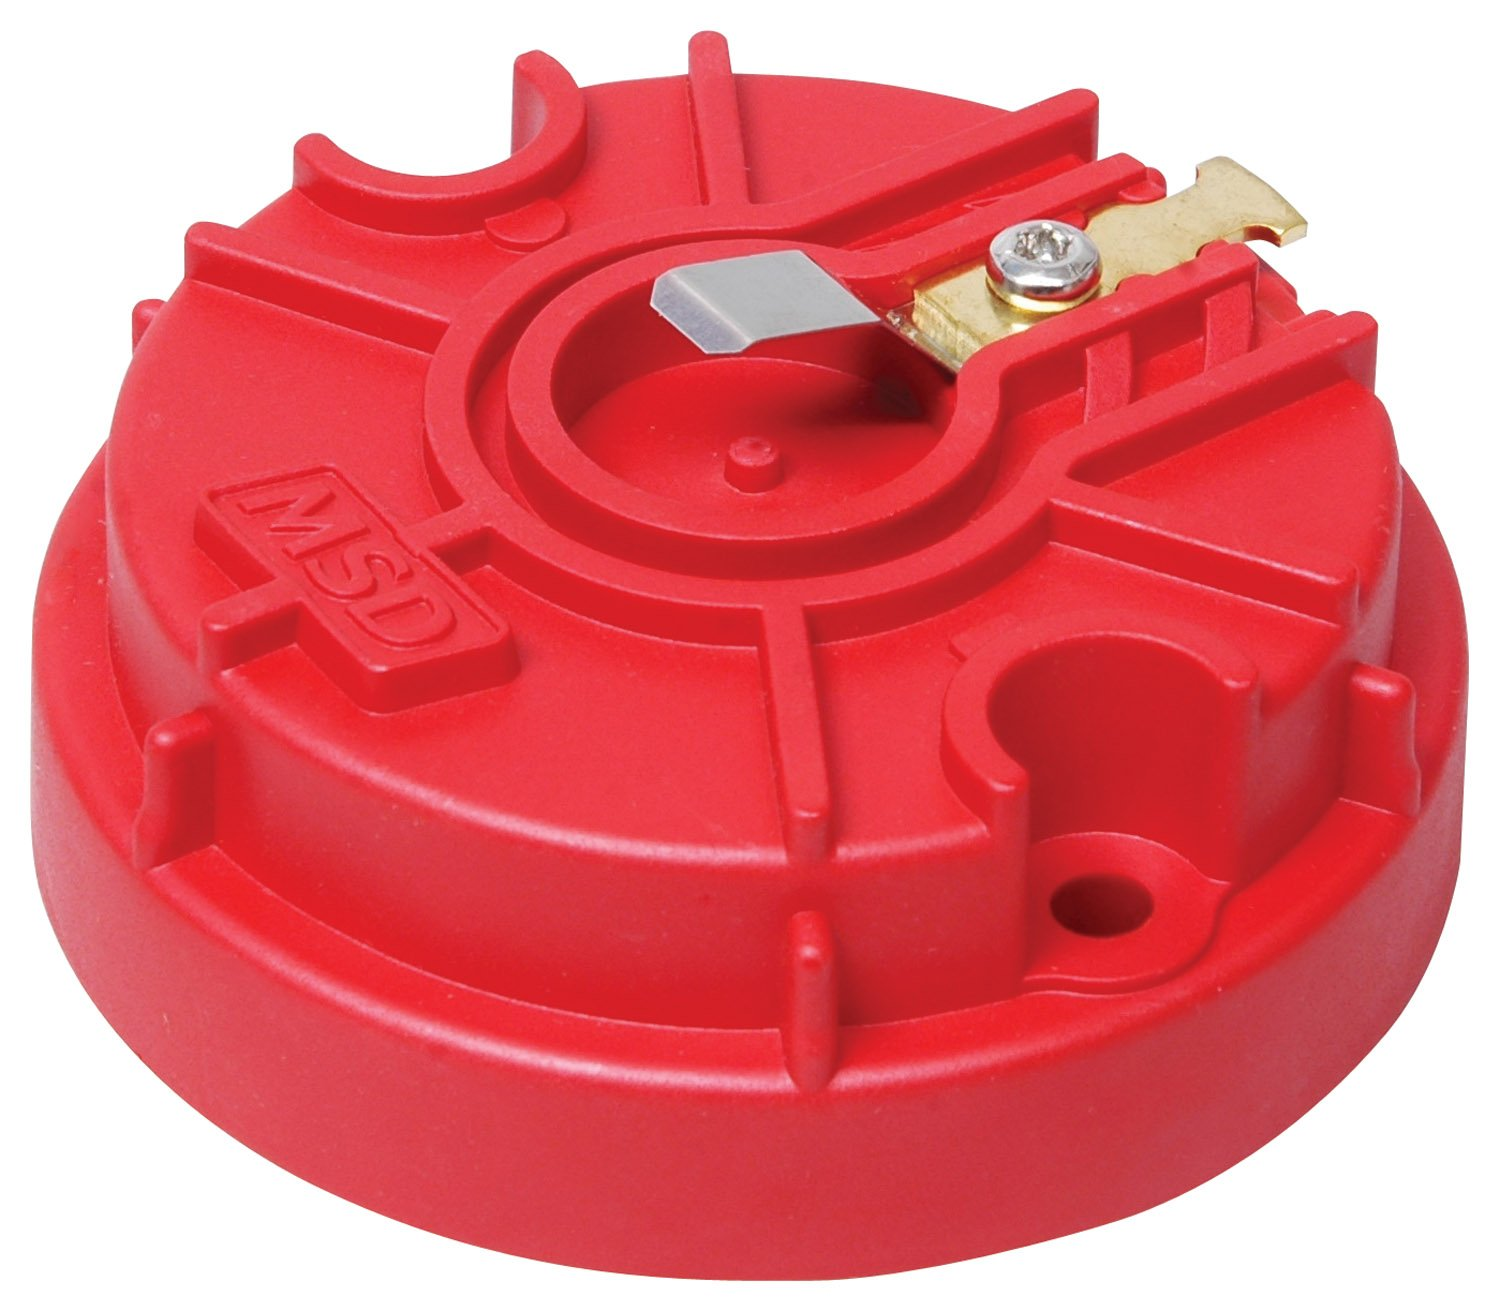 msd distributor cap and rotor review